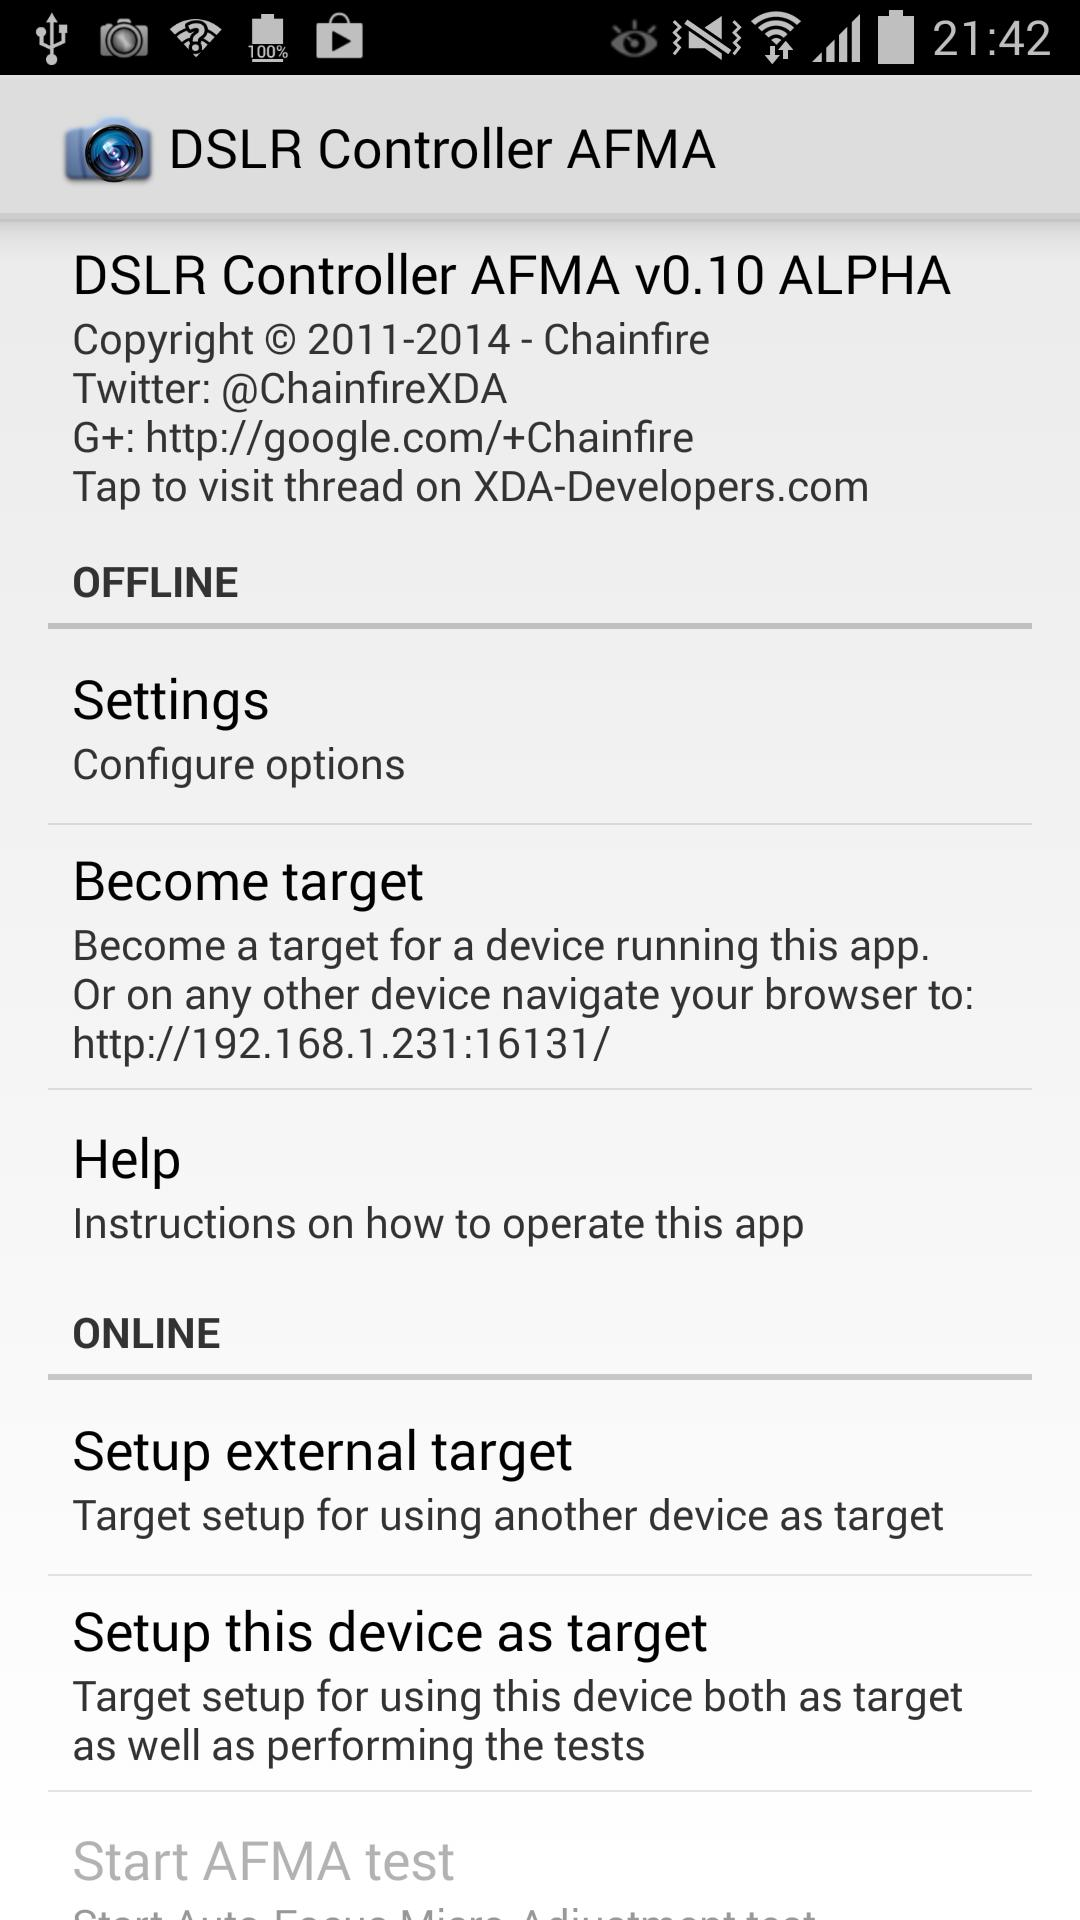 DSLR Controller AFMA for Android - APK Download